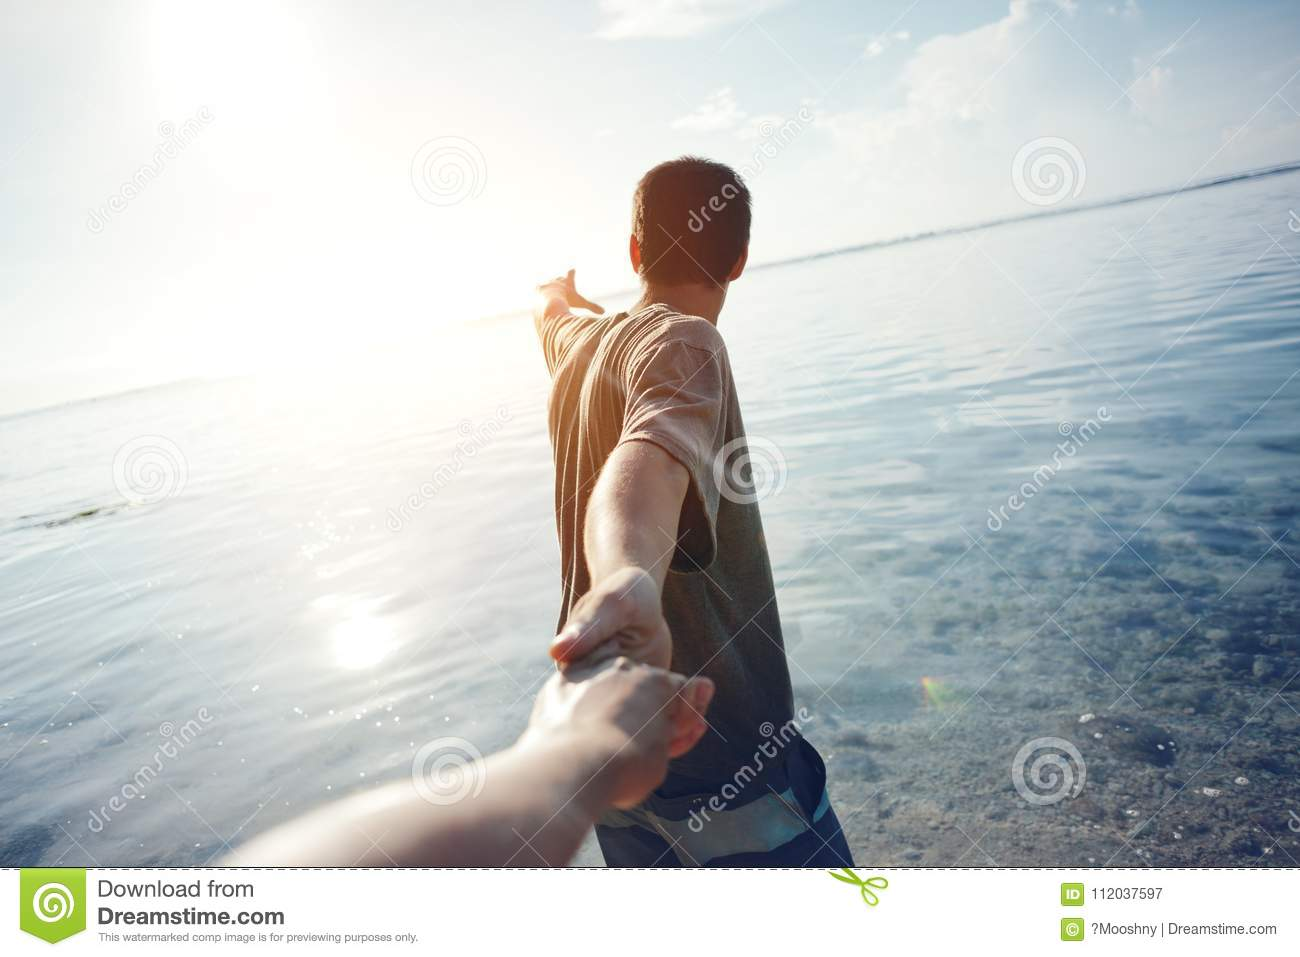 Brave man guiding traveling woman through the water in ocean